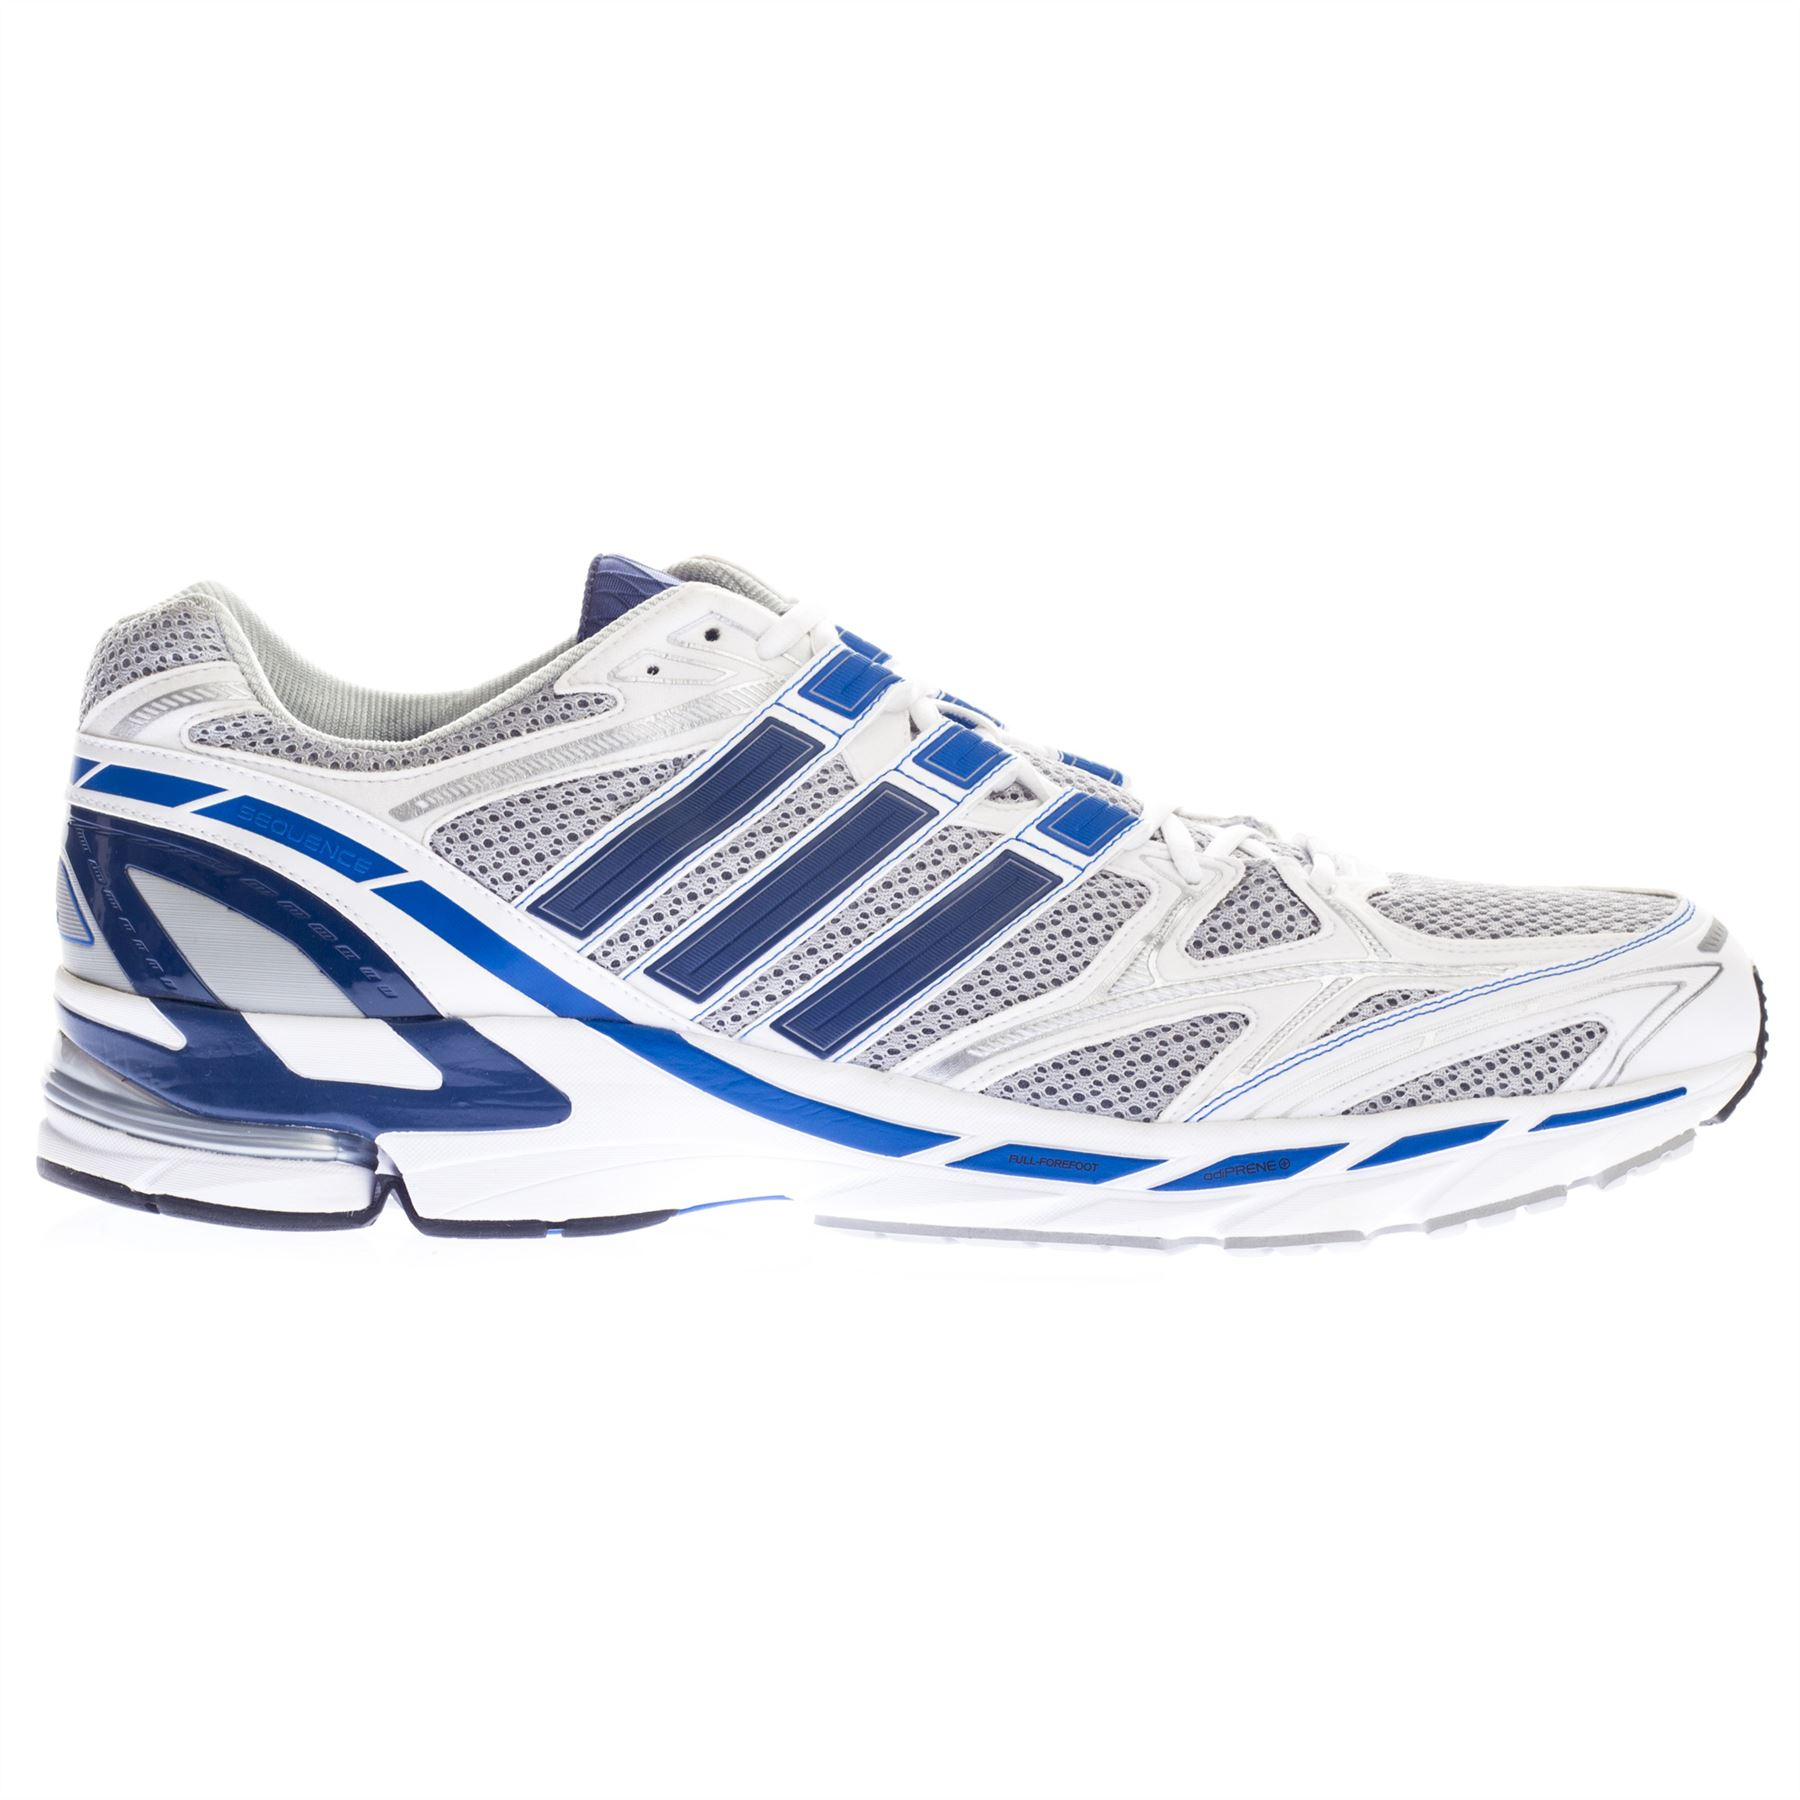 new style 652ad 17772 Adidas Men s Supernova Sequence 3 Trainers   eBay